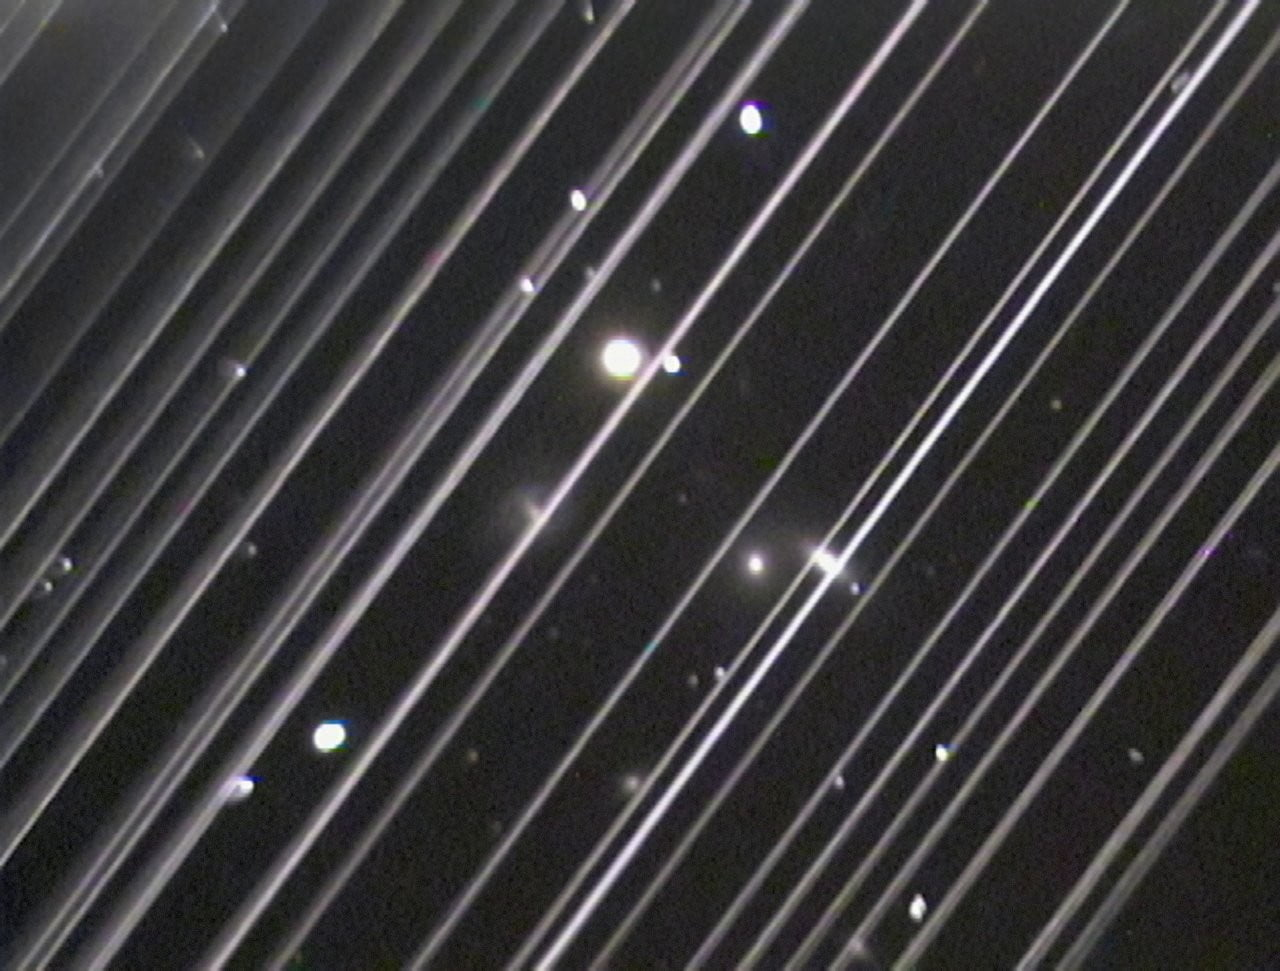 spacex satellites light pollution trails made by starlink